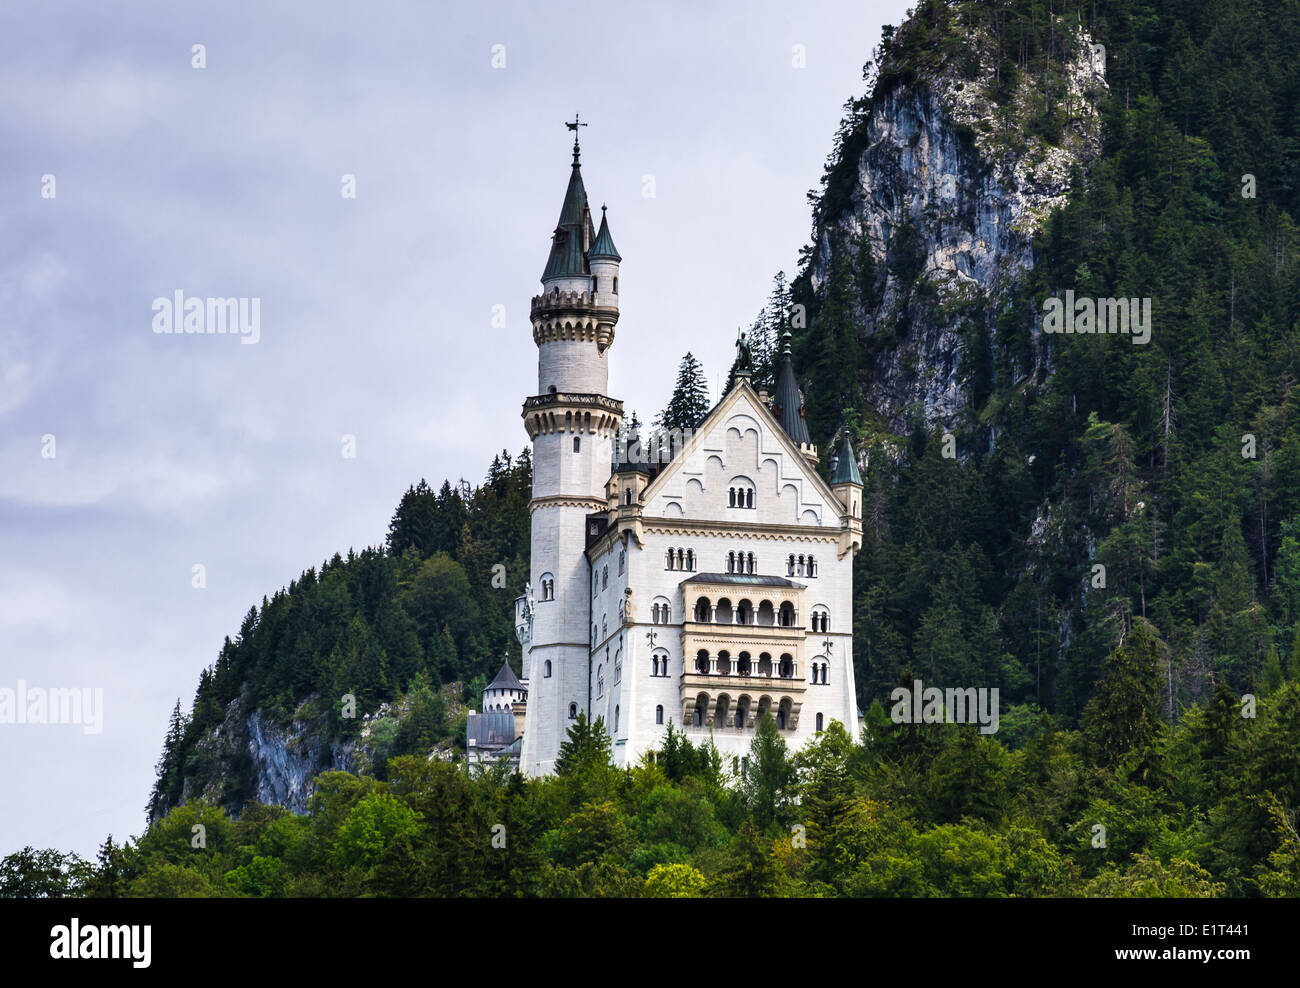 Nuschwanstein Castle. Nineteenth-century Romanesque Revival palace on a rugged hill in southern Bavaria, Germany - Stock Image